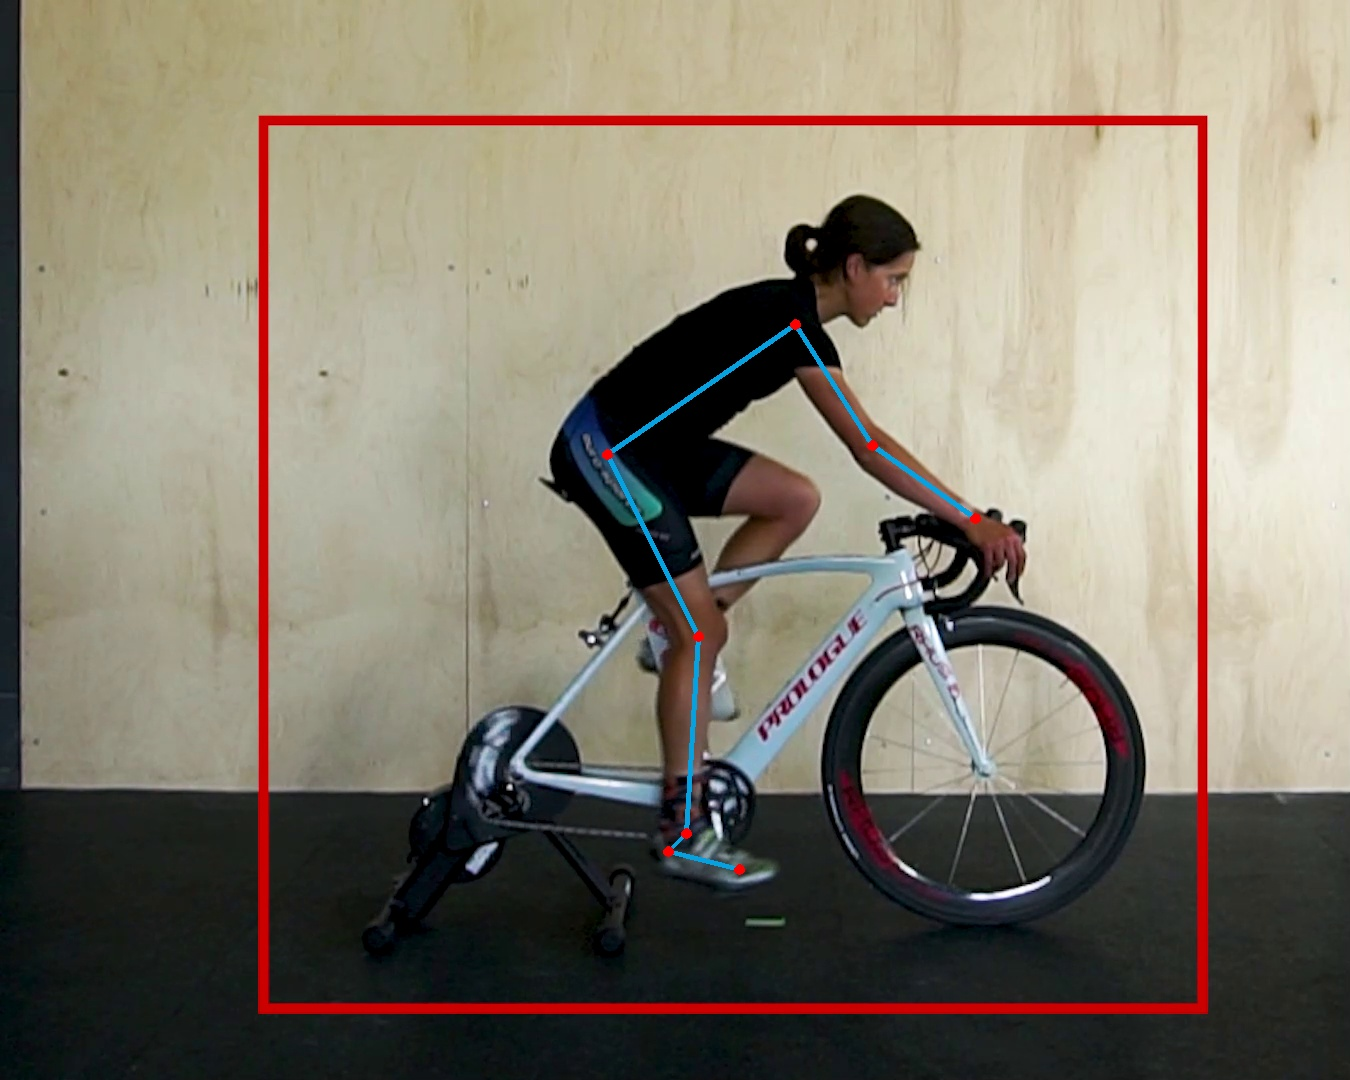 Cyclist getting a bike fit with leg at 180 degrees